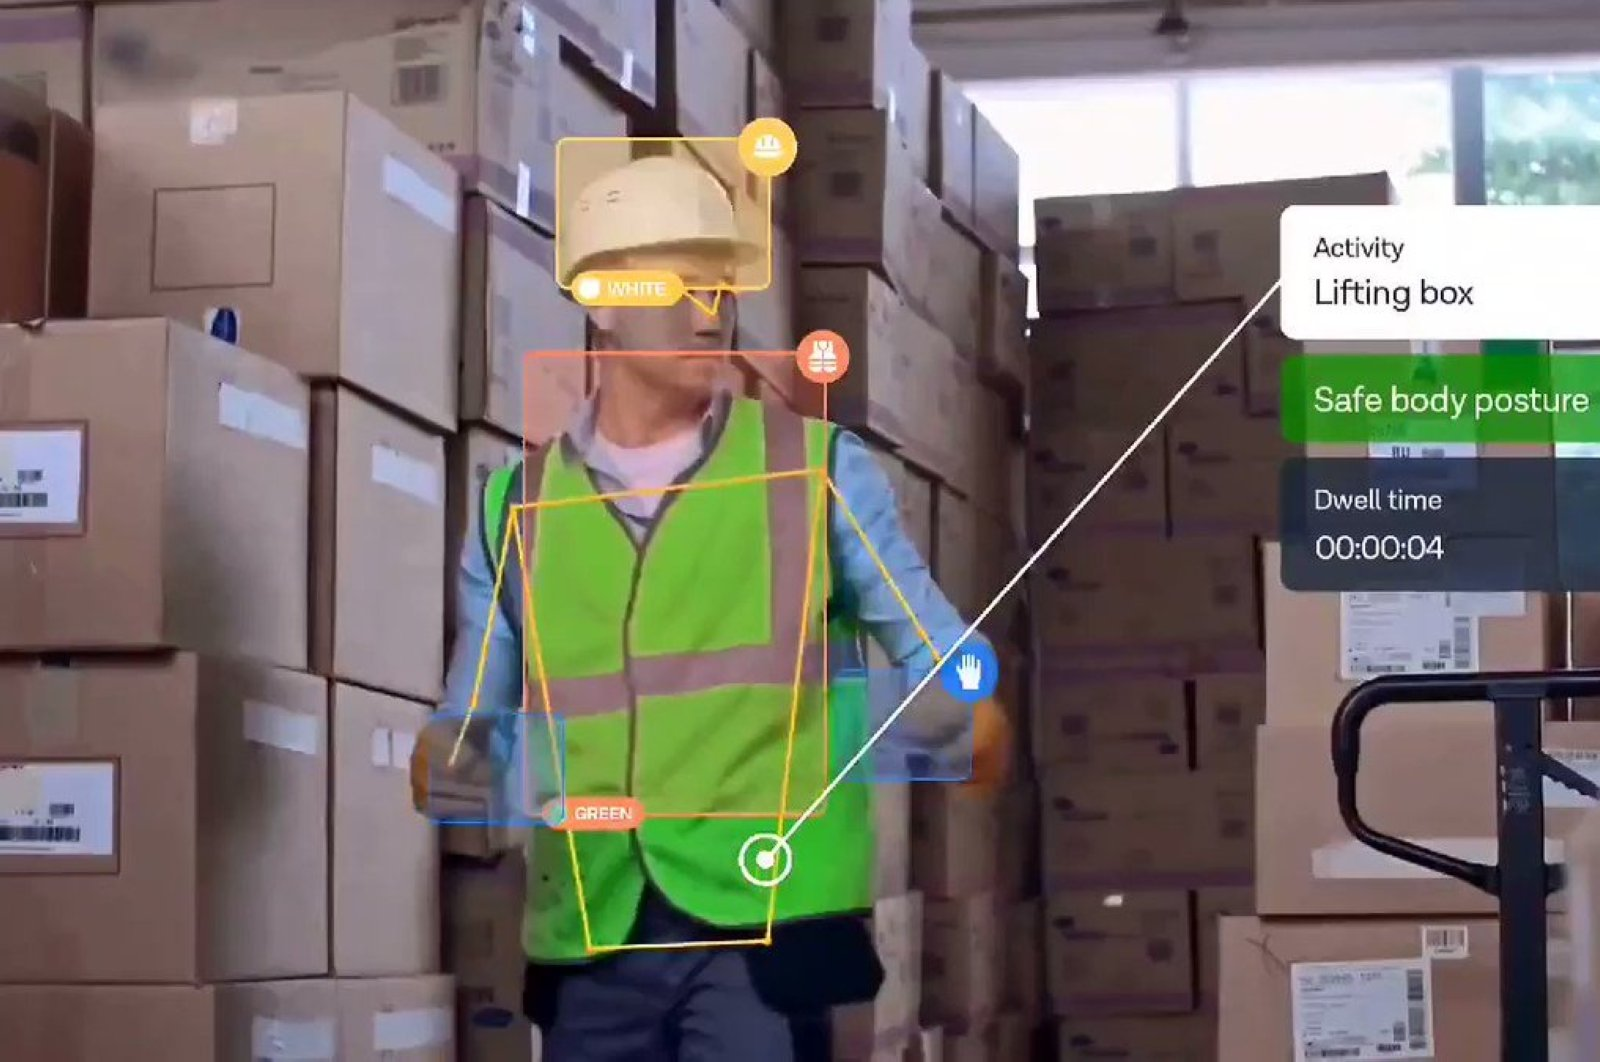 Artificial intelligence-supported cameras will monitor occupational safety in factories. (Photo courtesy of Intenseye)